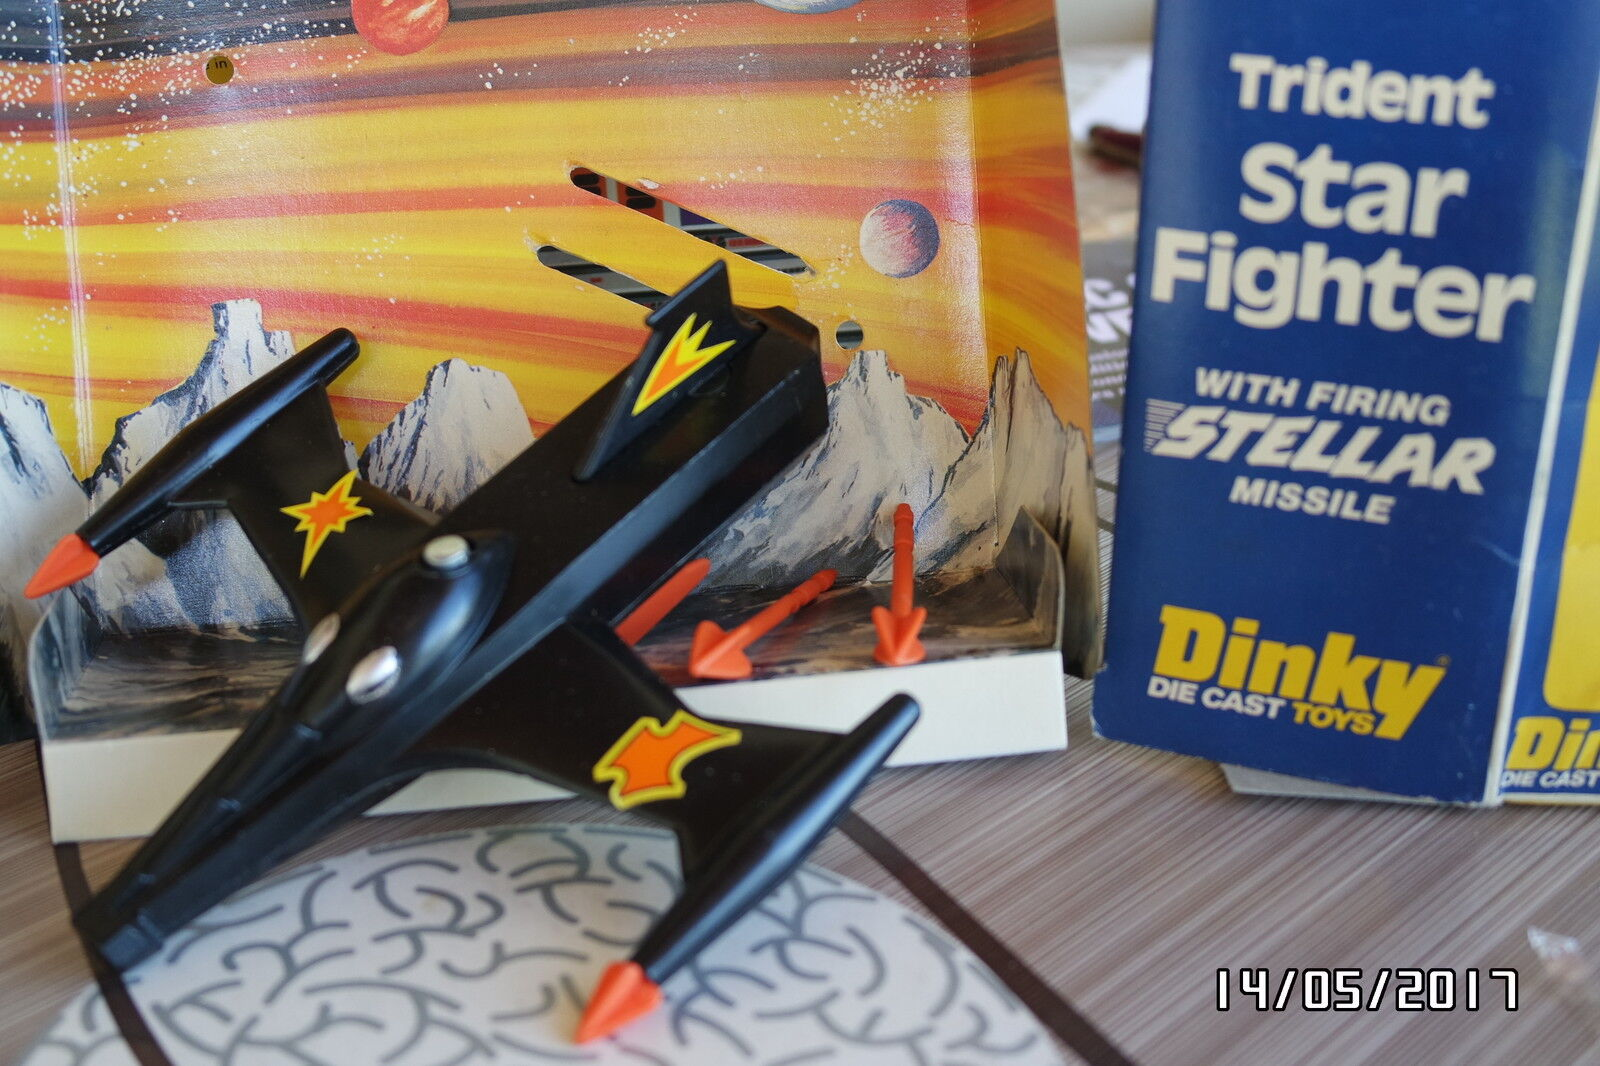 Dinky toys gb 362 trident star fighter nb